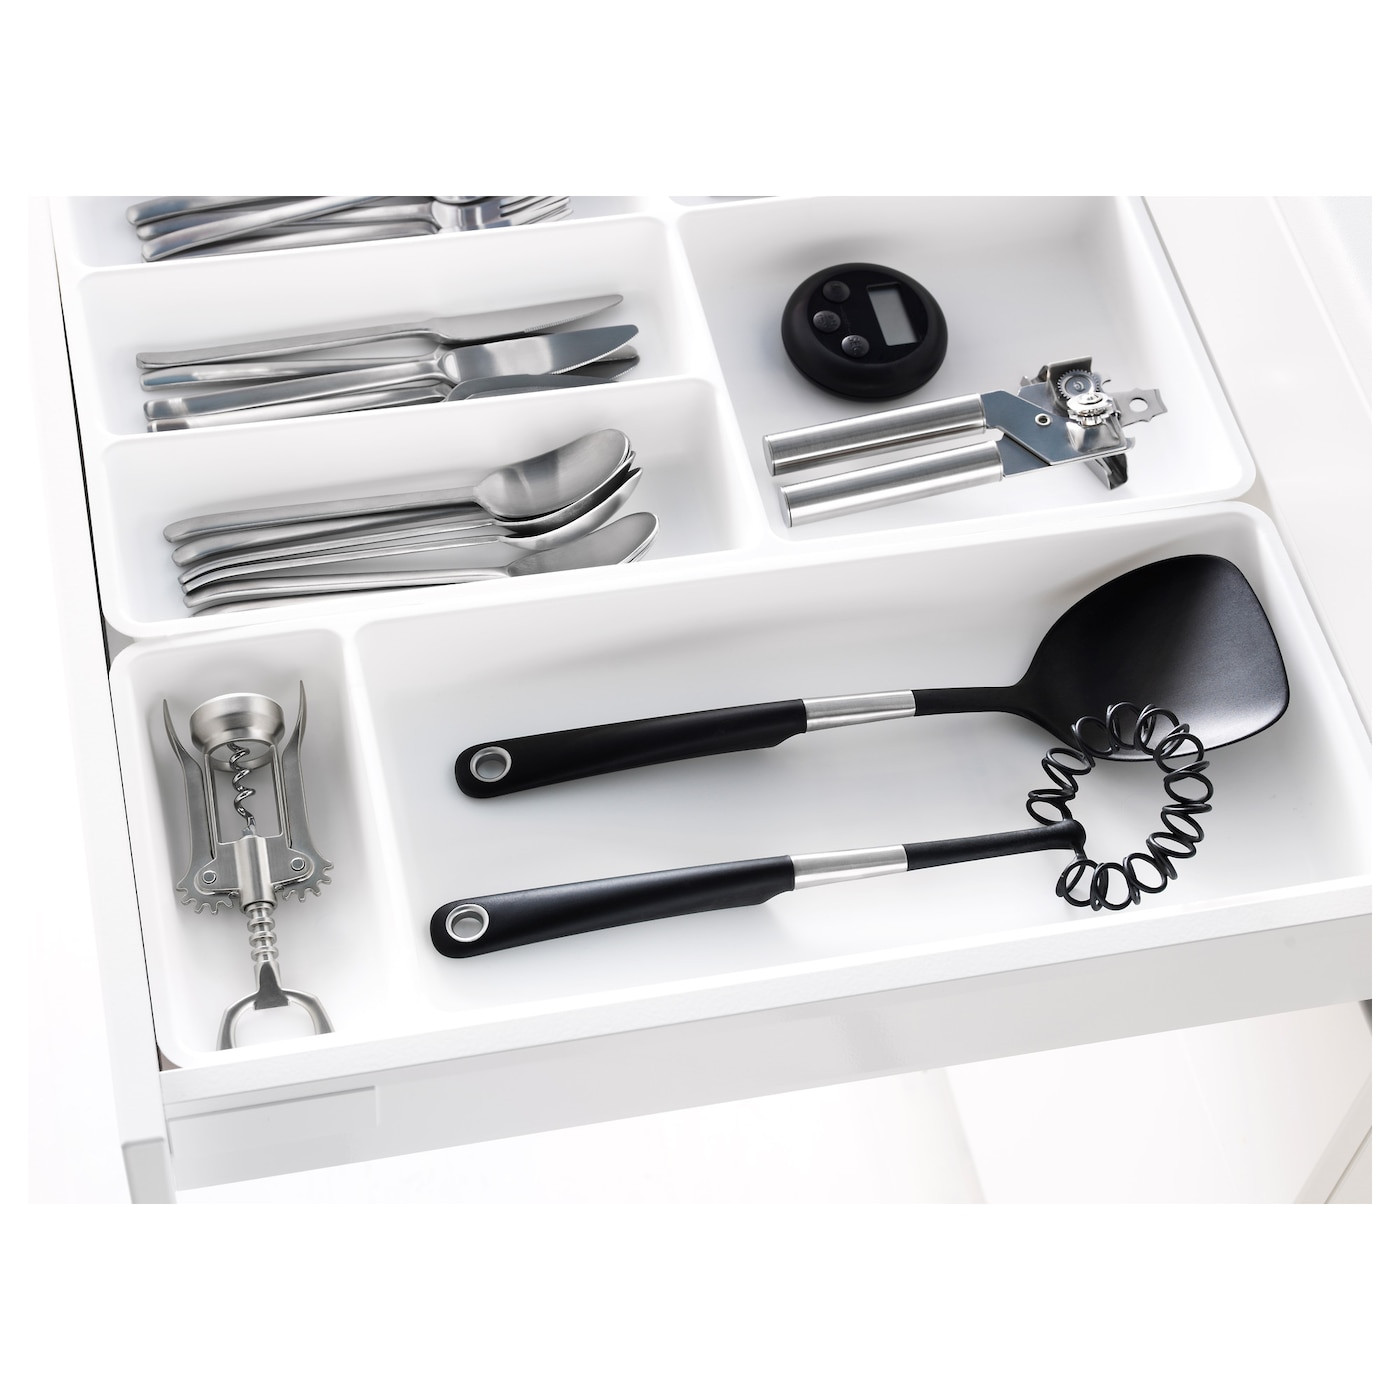 IKEA STÖDJA utensil tray Ideal for storing large kitchen utensils. Easy to remove for cleaning.